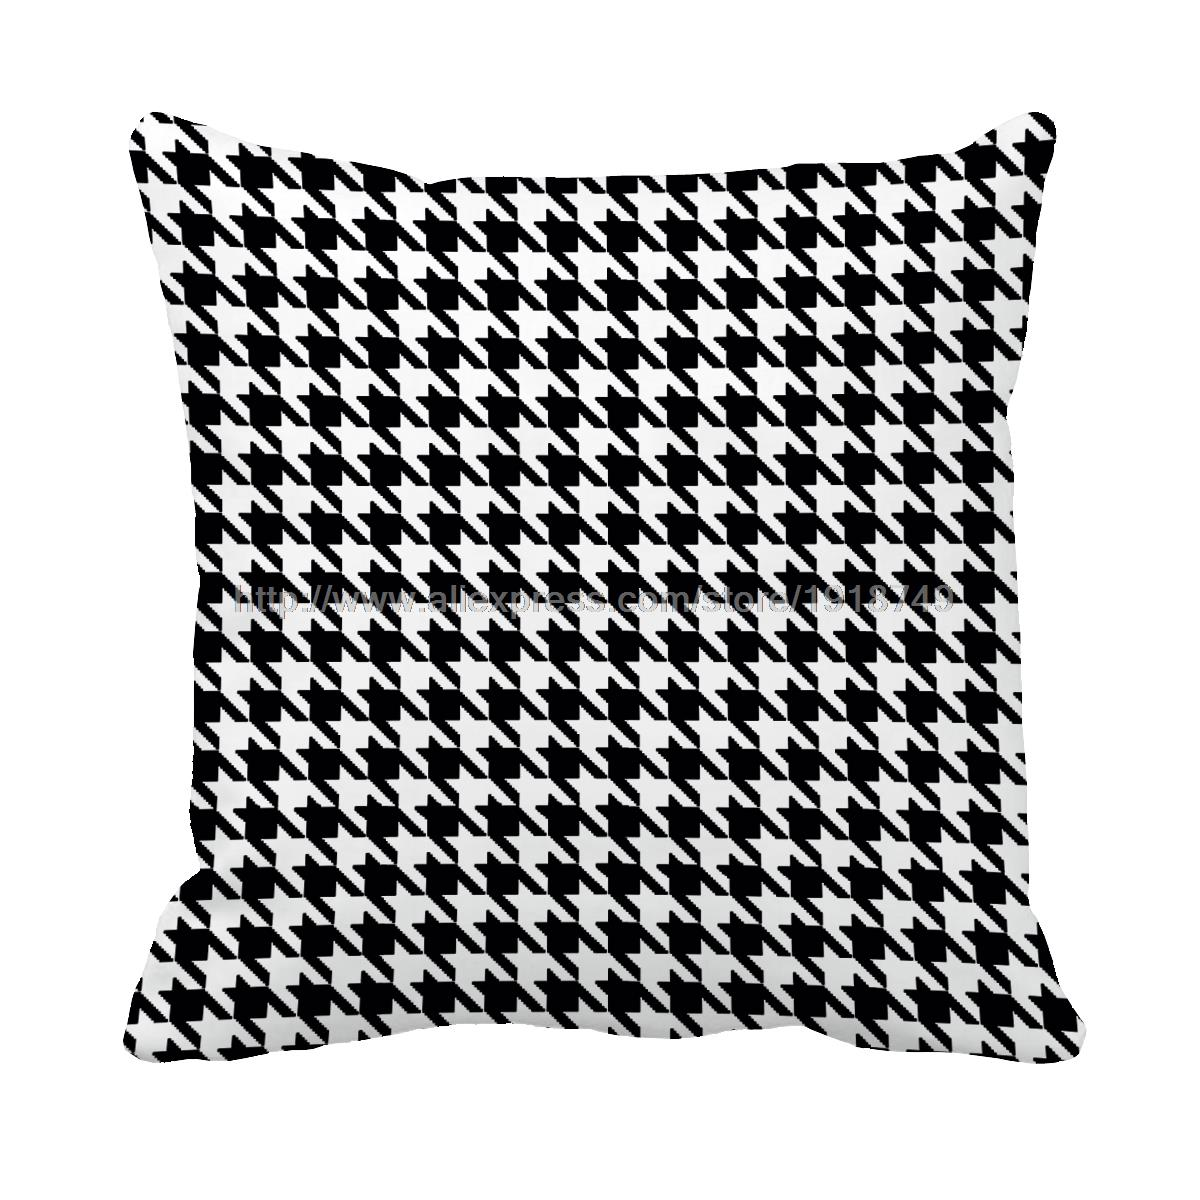 black and white Houndstooth printed decorative throw pillow case sofa chair decor modernist geometric cushion cover